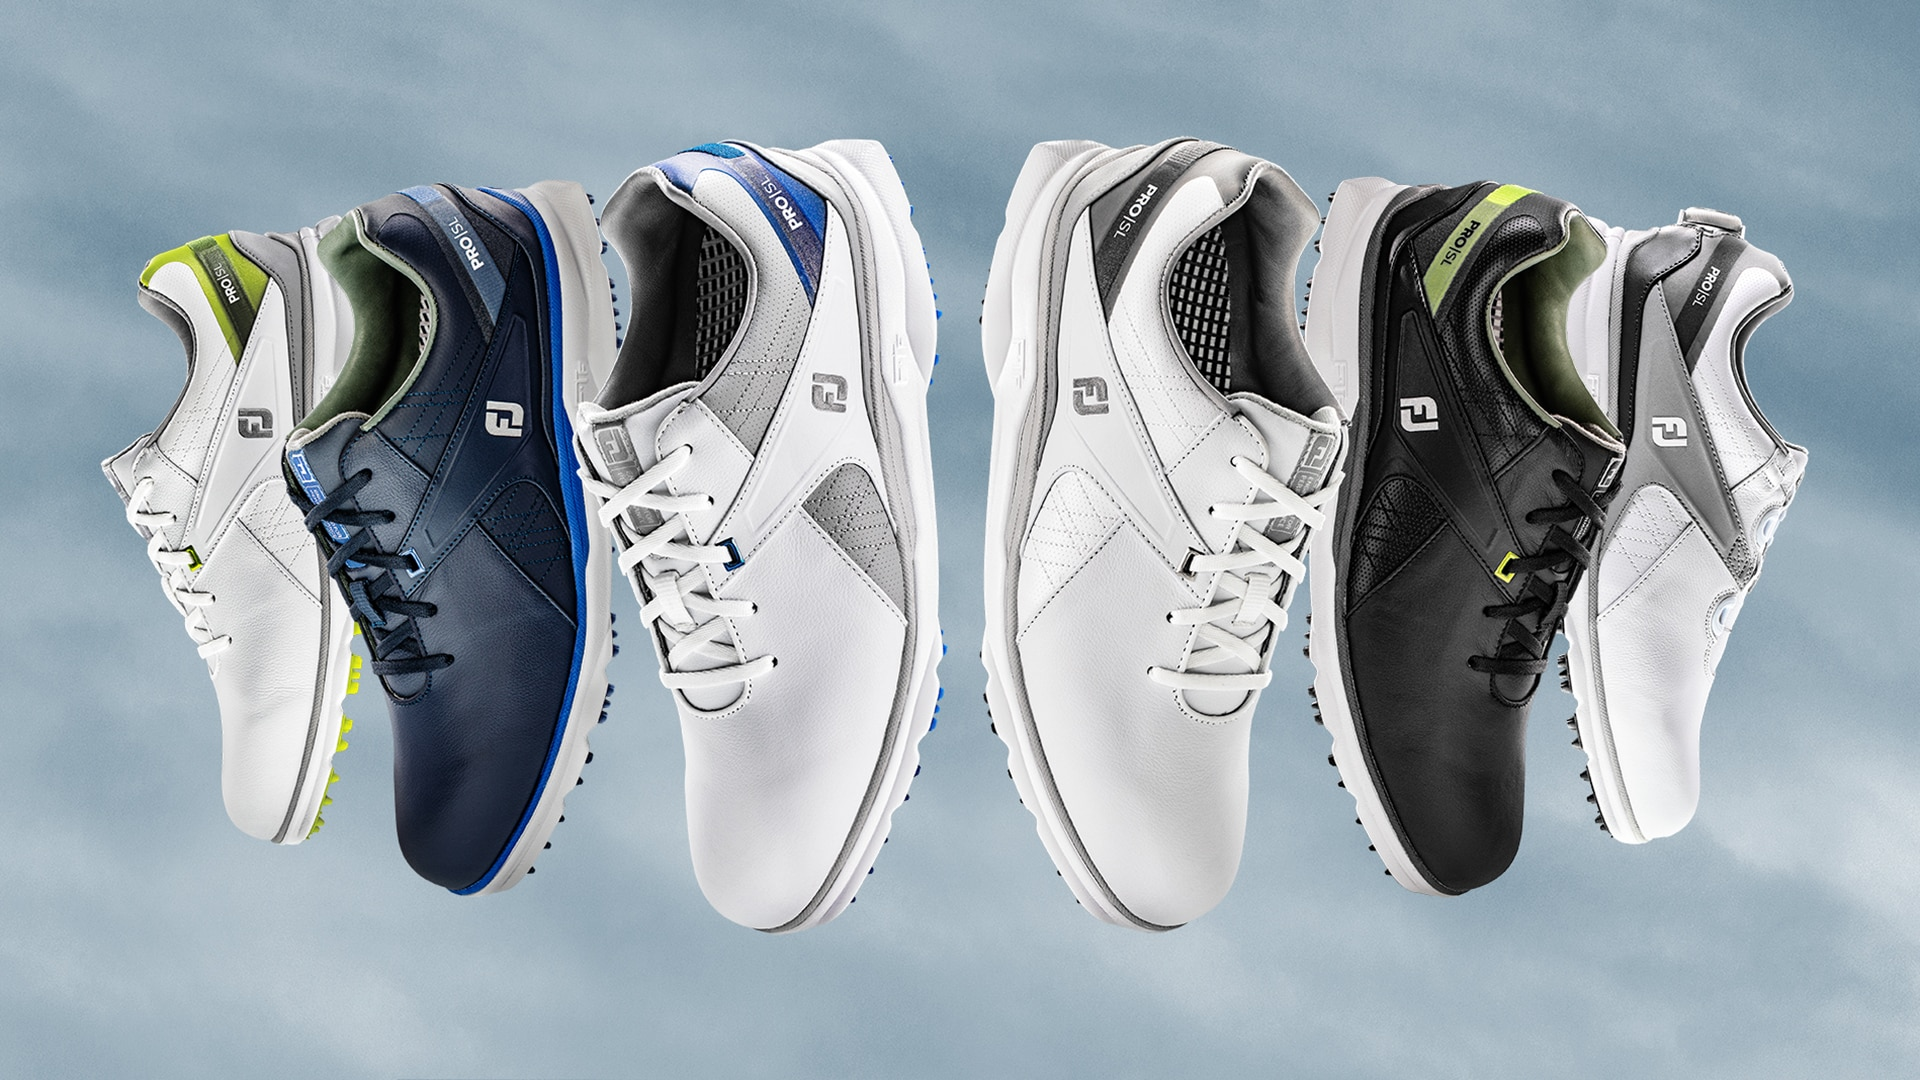 Walking Around The Pga Show New Golf Footwear For 2020 Golf Channel